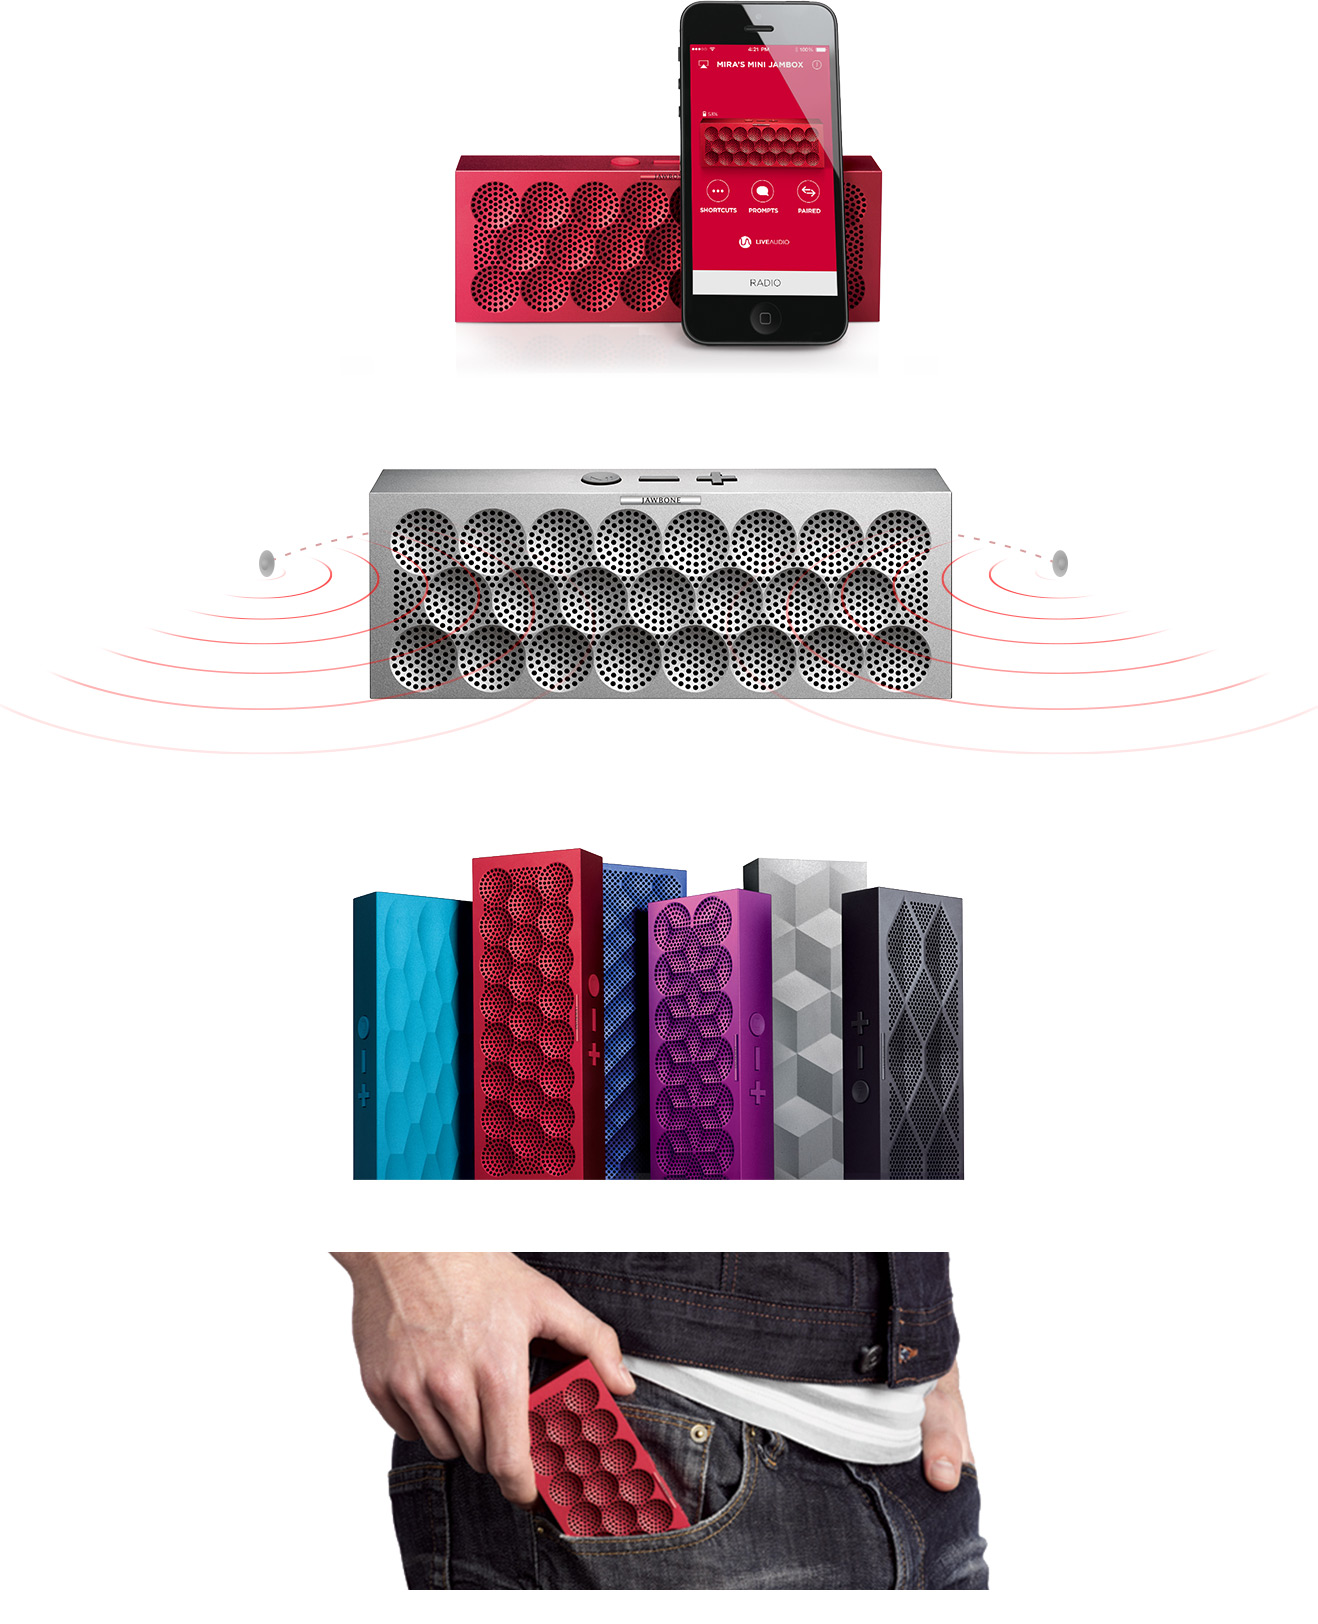 jawbone announces mini jambox at jaw dropping 179 price ships end rh 9to5mac com Microsoft Quick Guide Windows 8 Quick Start Guide